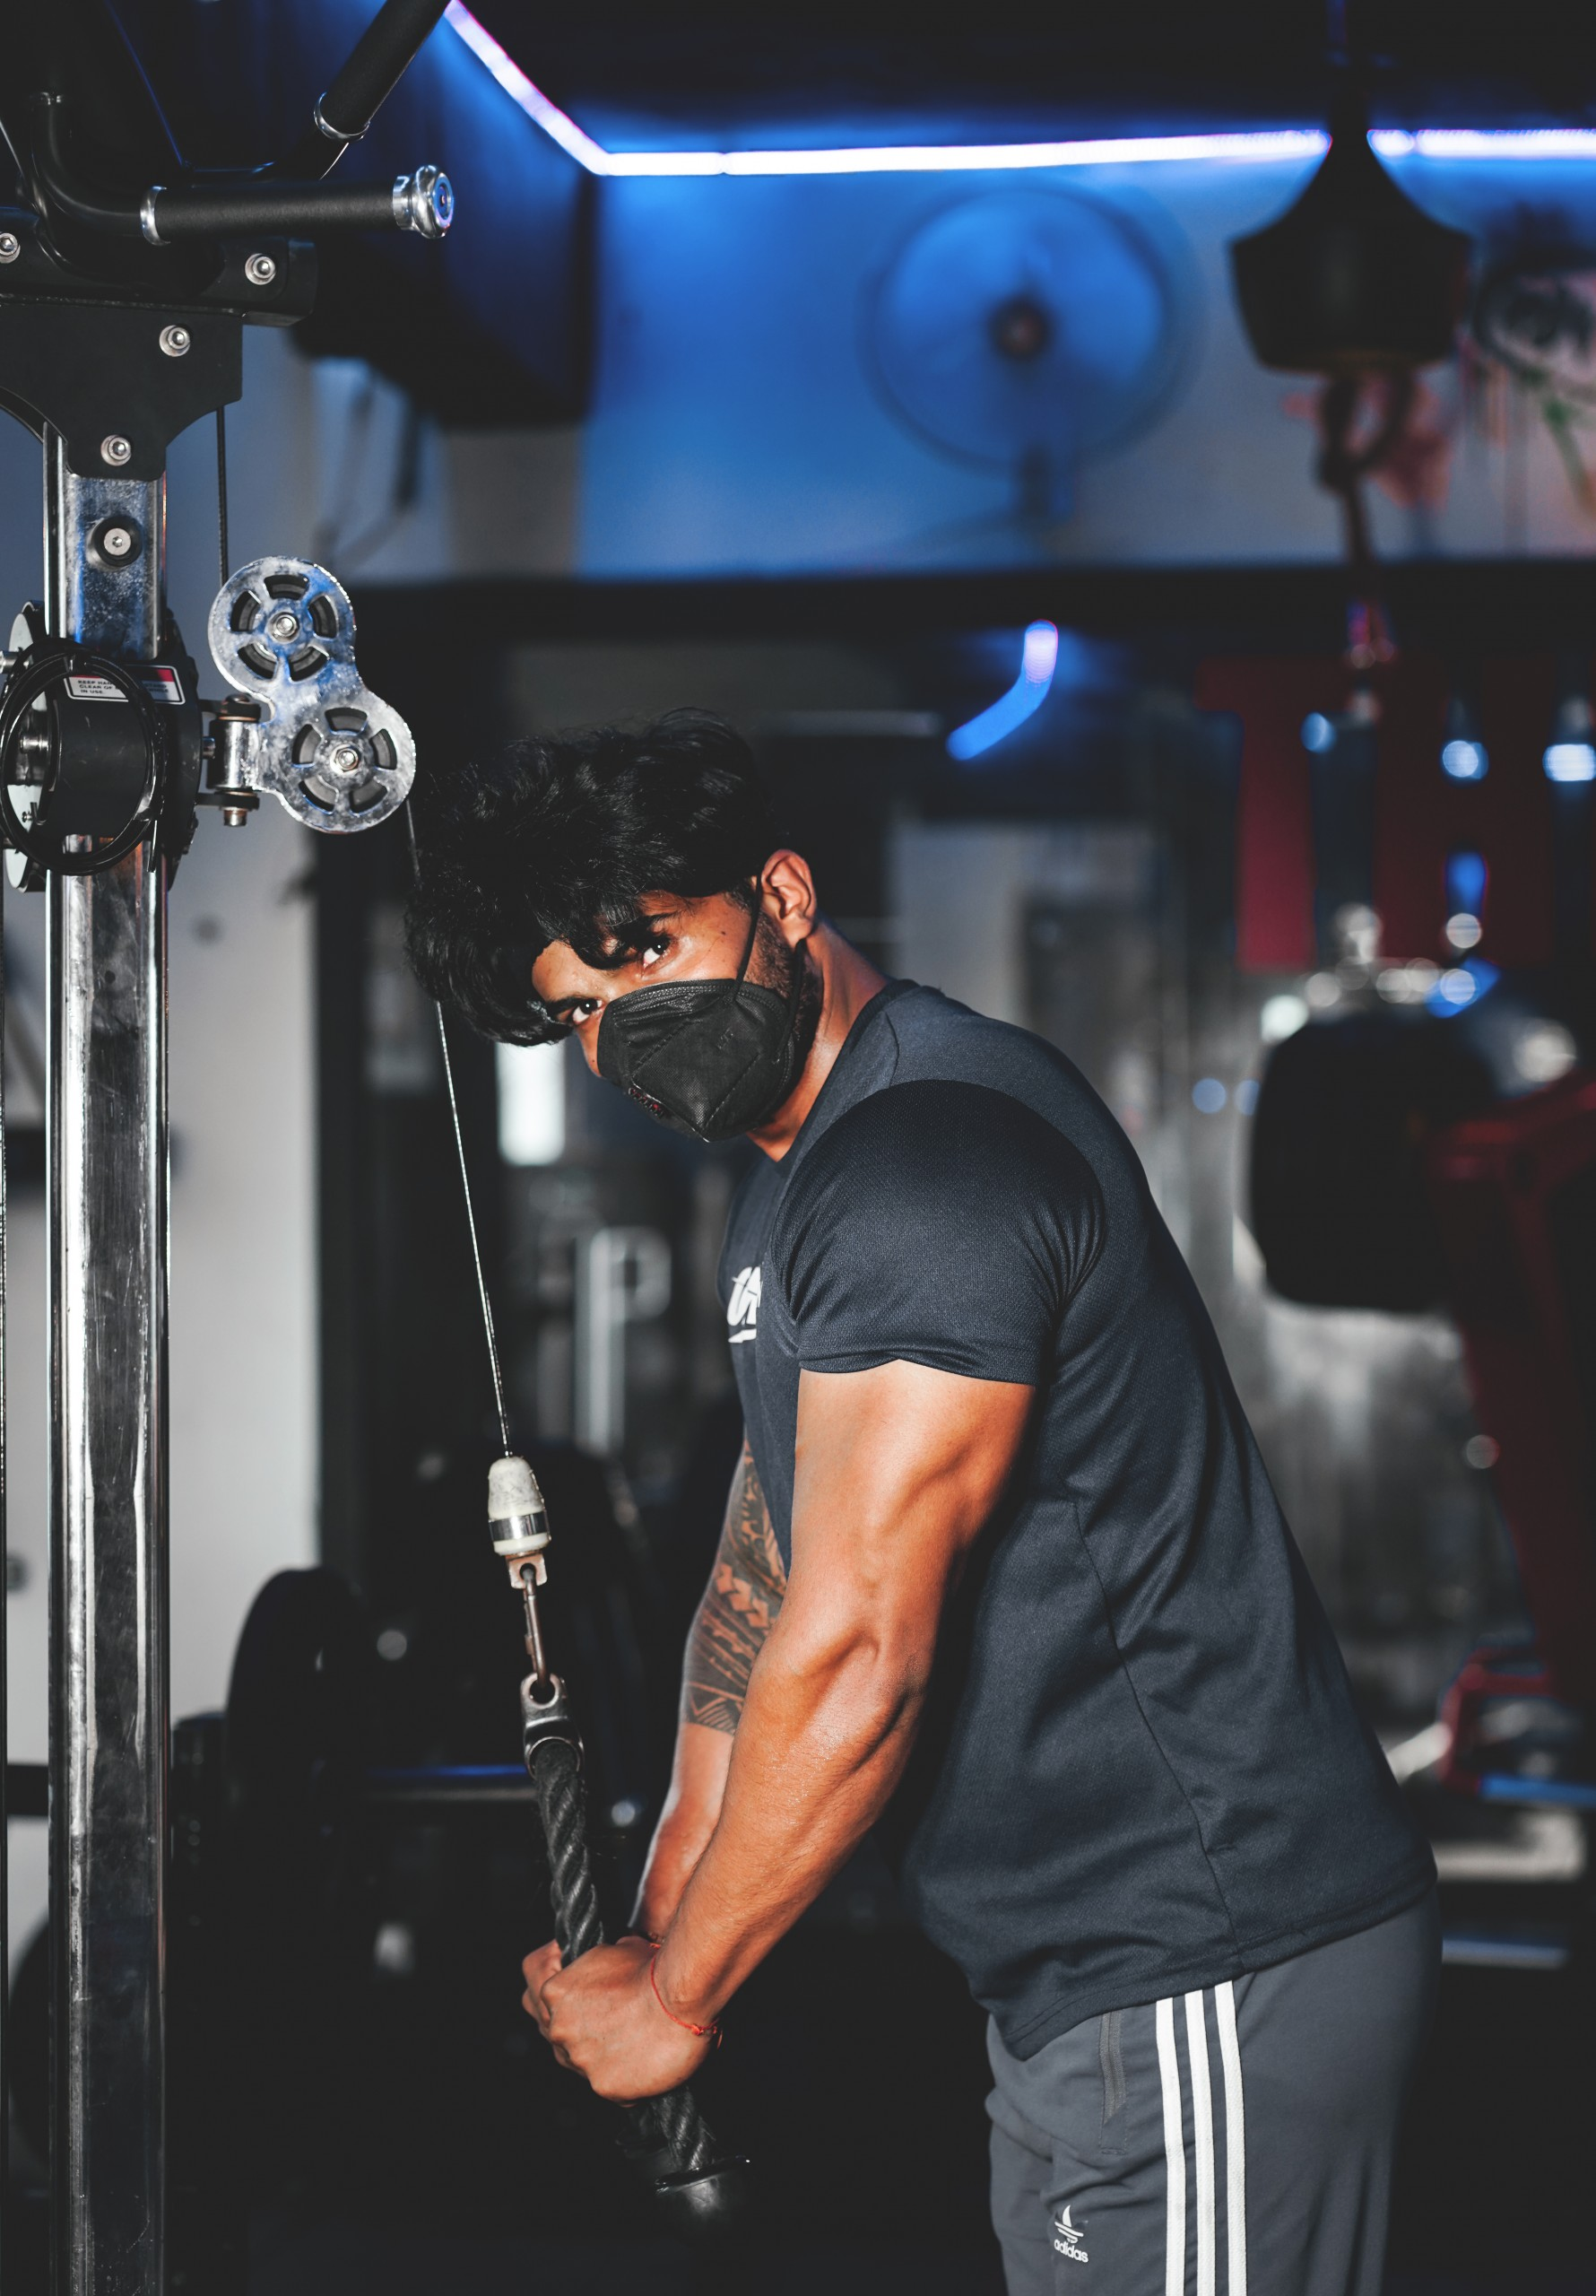 Bodybuilder Workout Triceps Push-down in the Gym